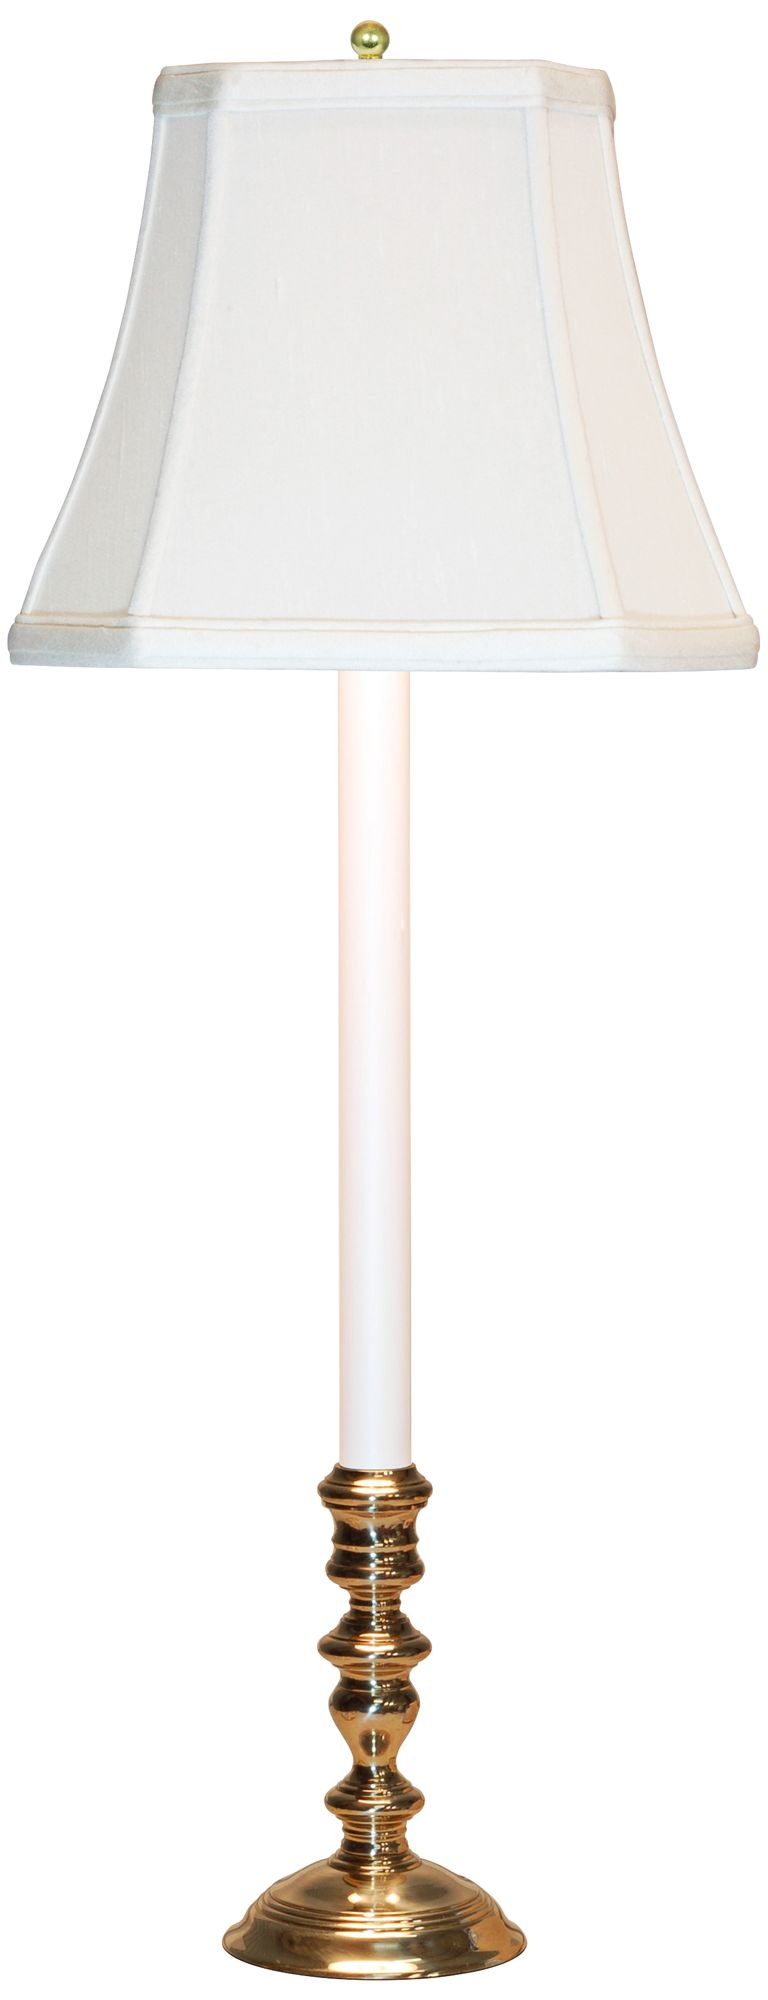 Brookwood Candlestick Buffet Table Lamp With Off White Shade